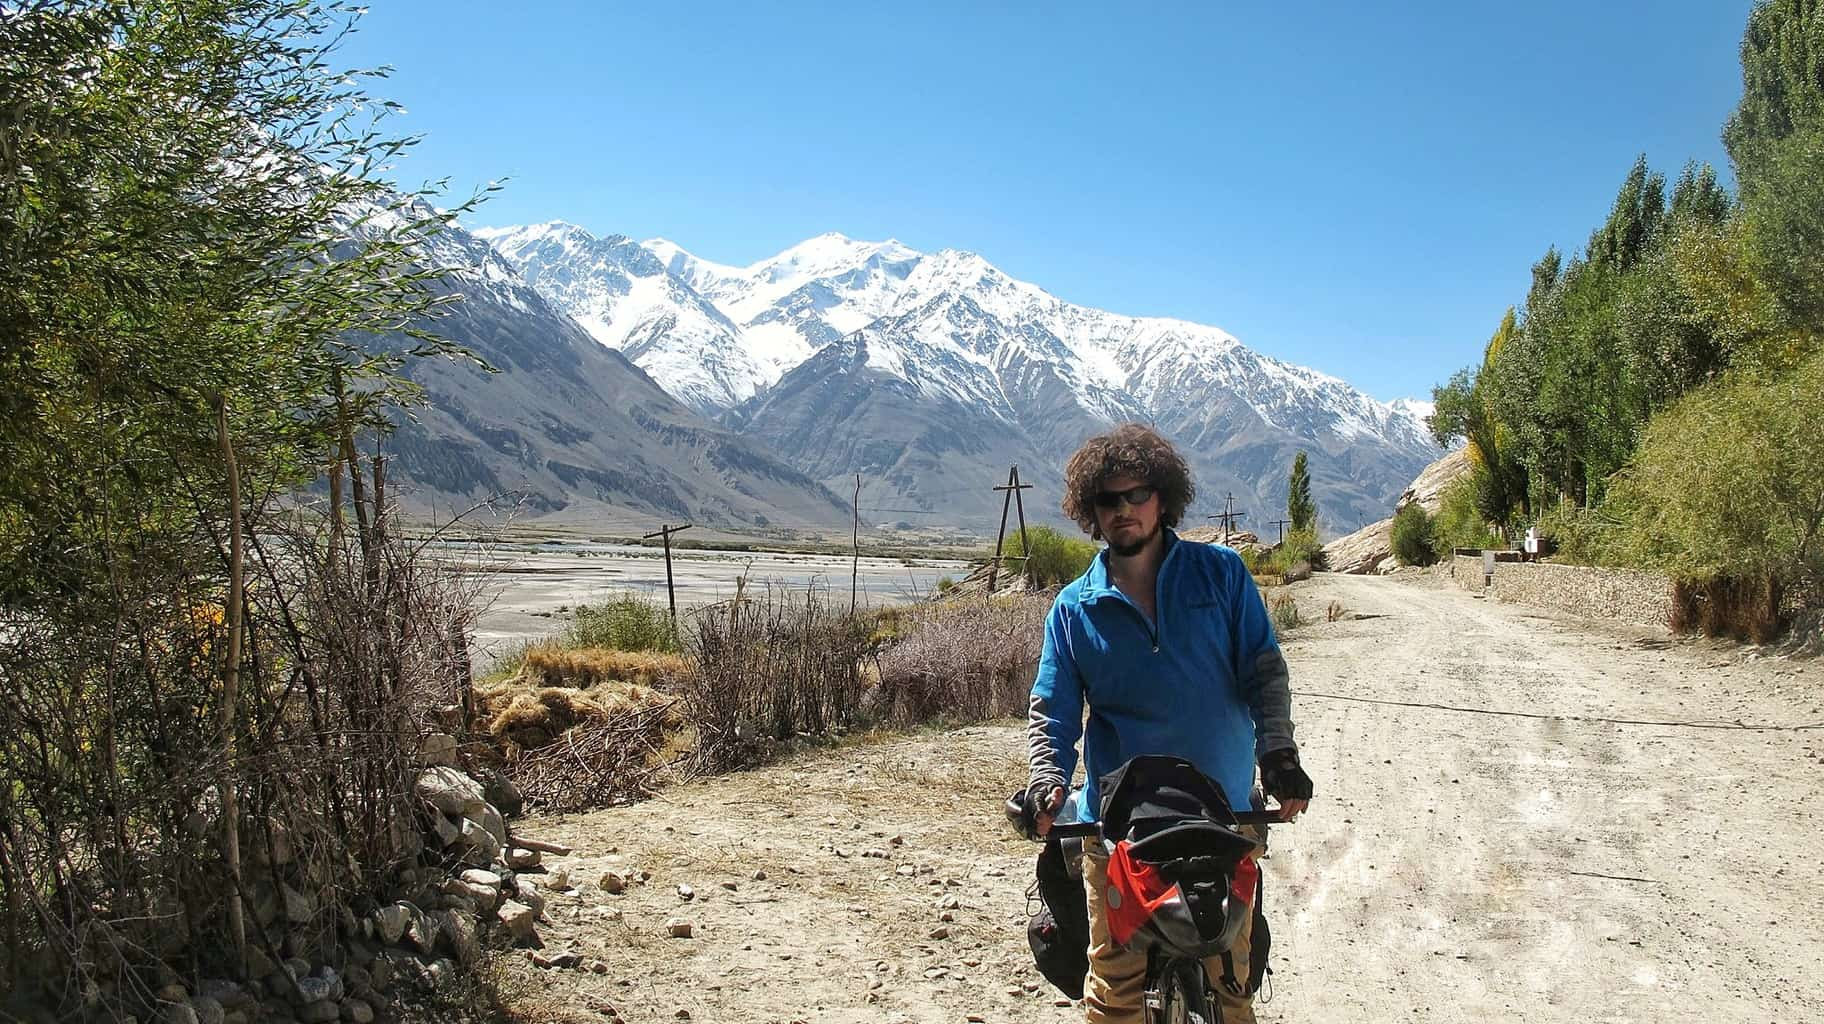 Me Biking through Central Asia